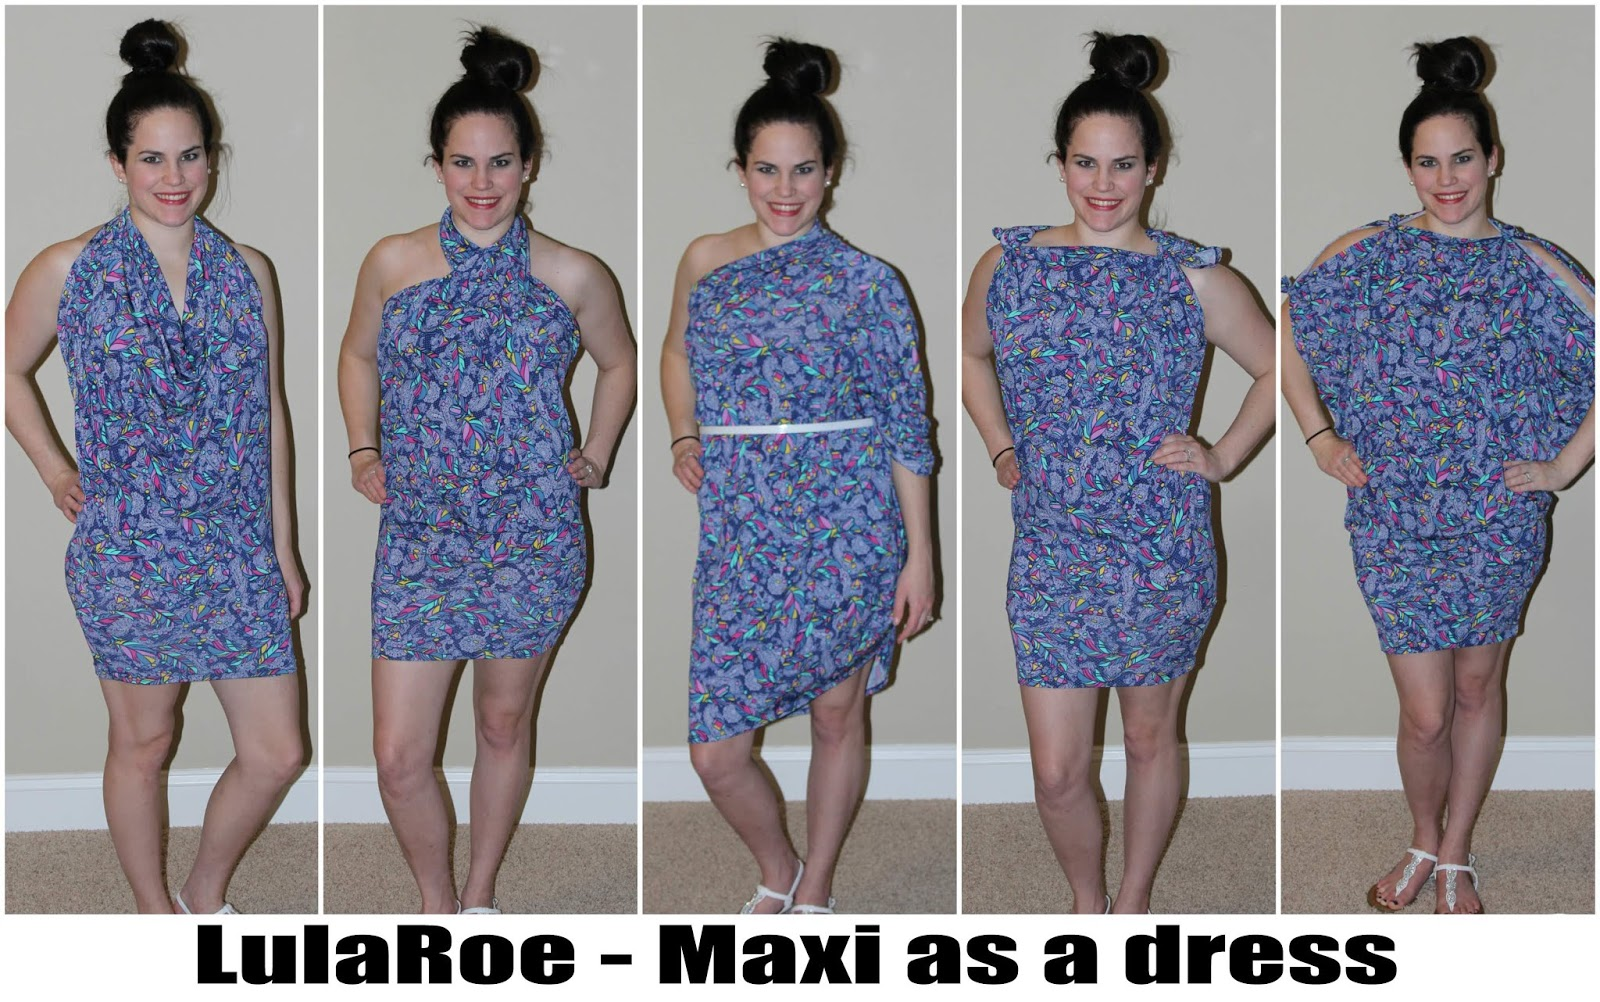 7362b9051aa Lularoe Maxi Skirts For Sale - Gomes Weine AG